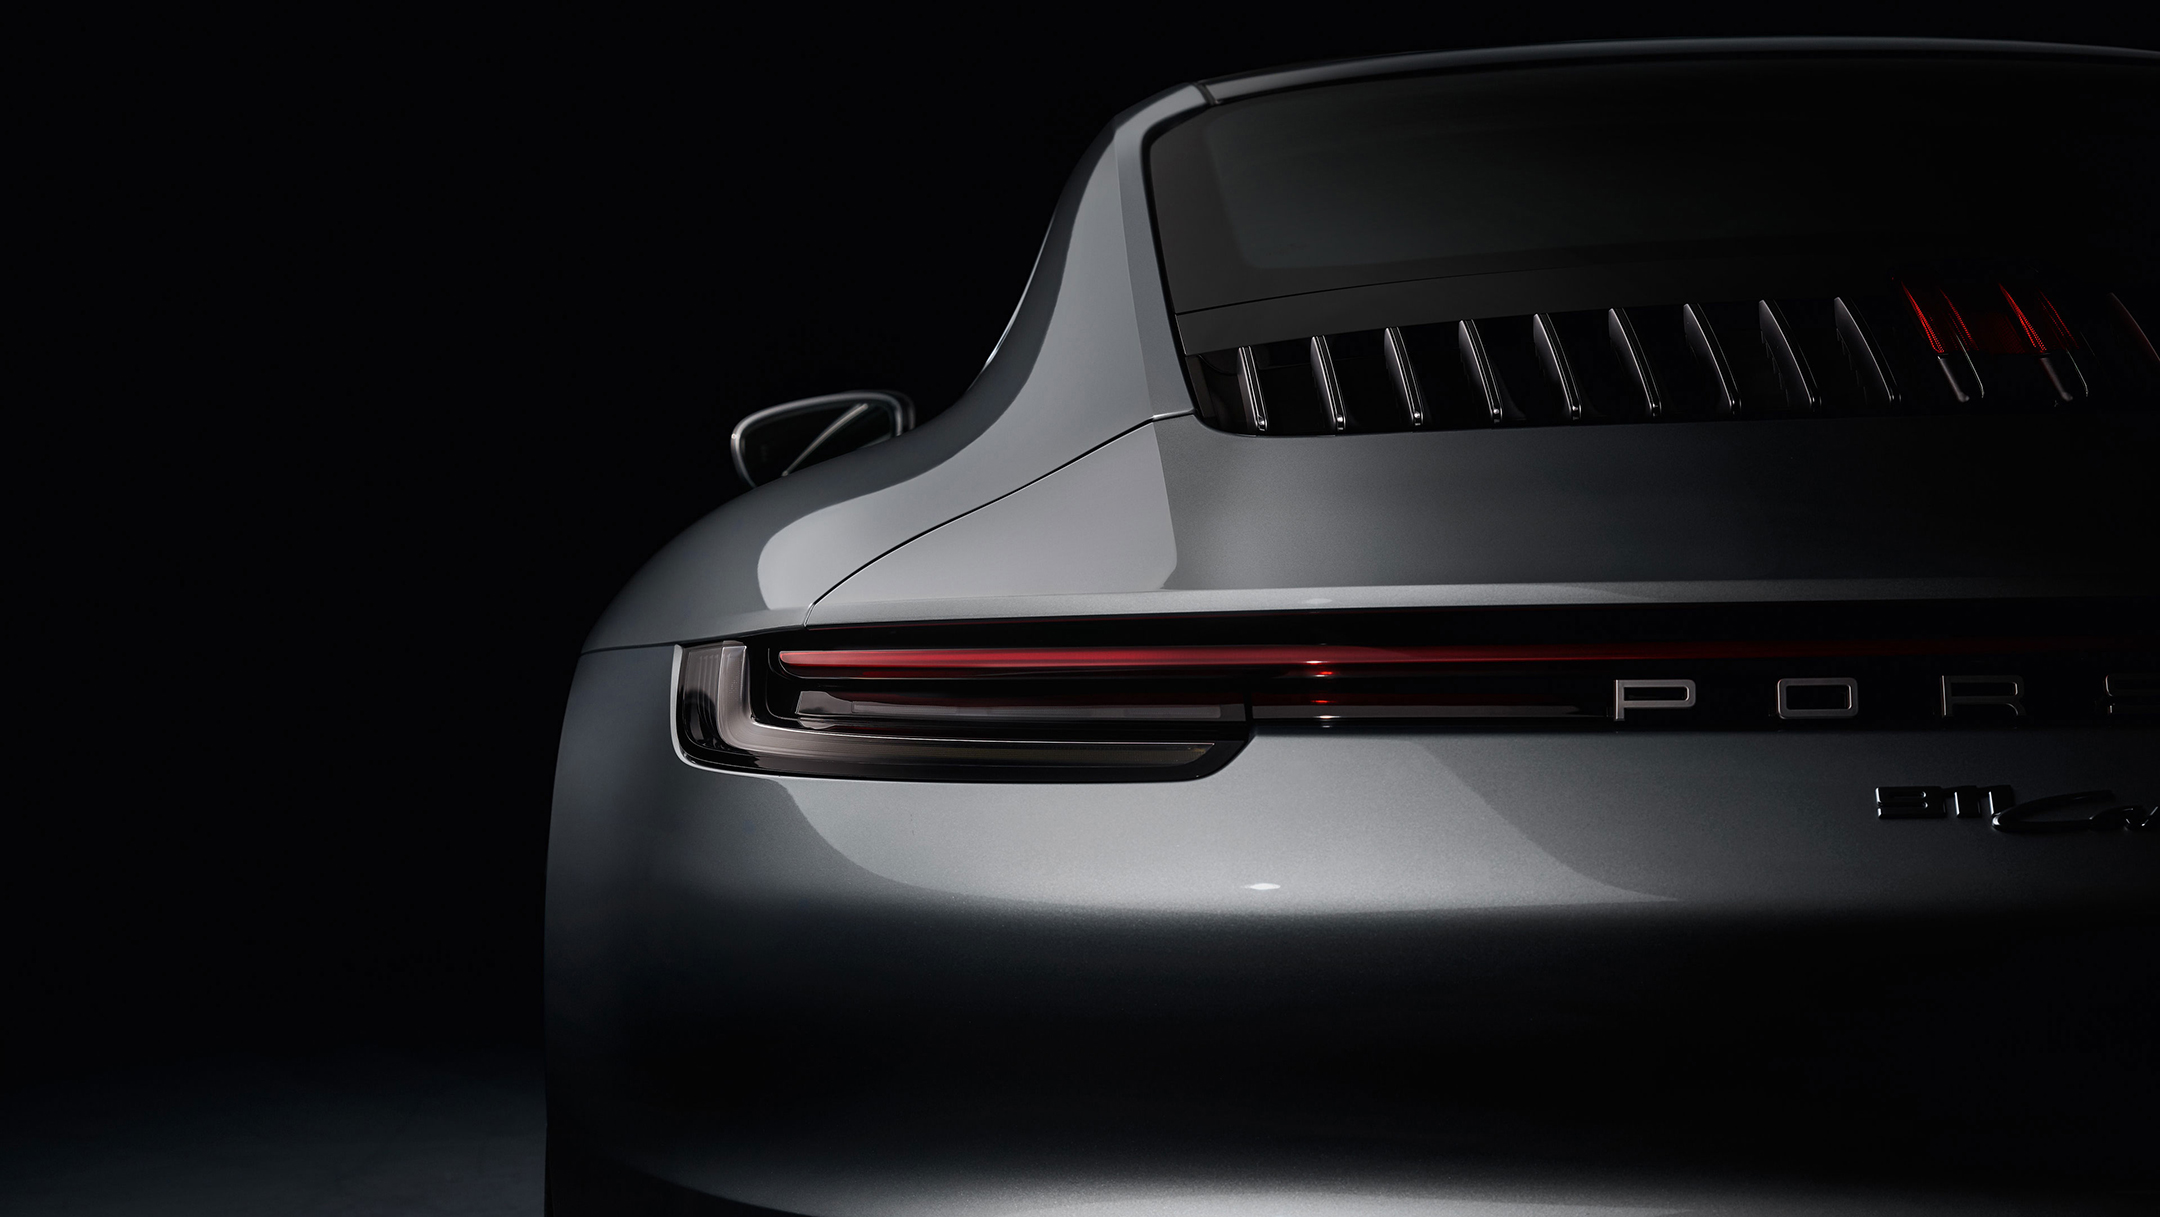 Porsche 911 type 992 Carrera 4S - 2018 - rear view